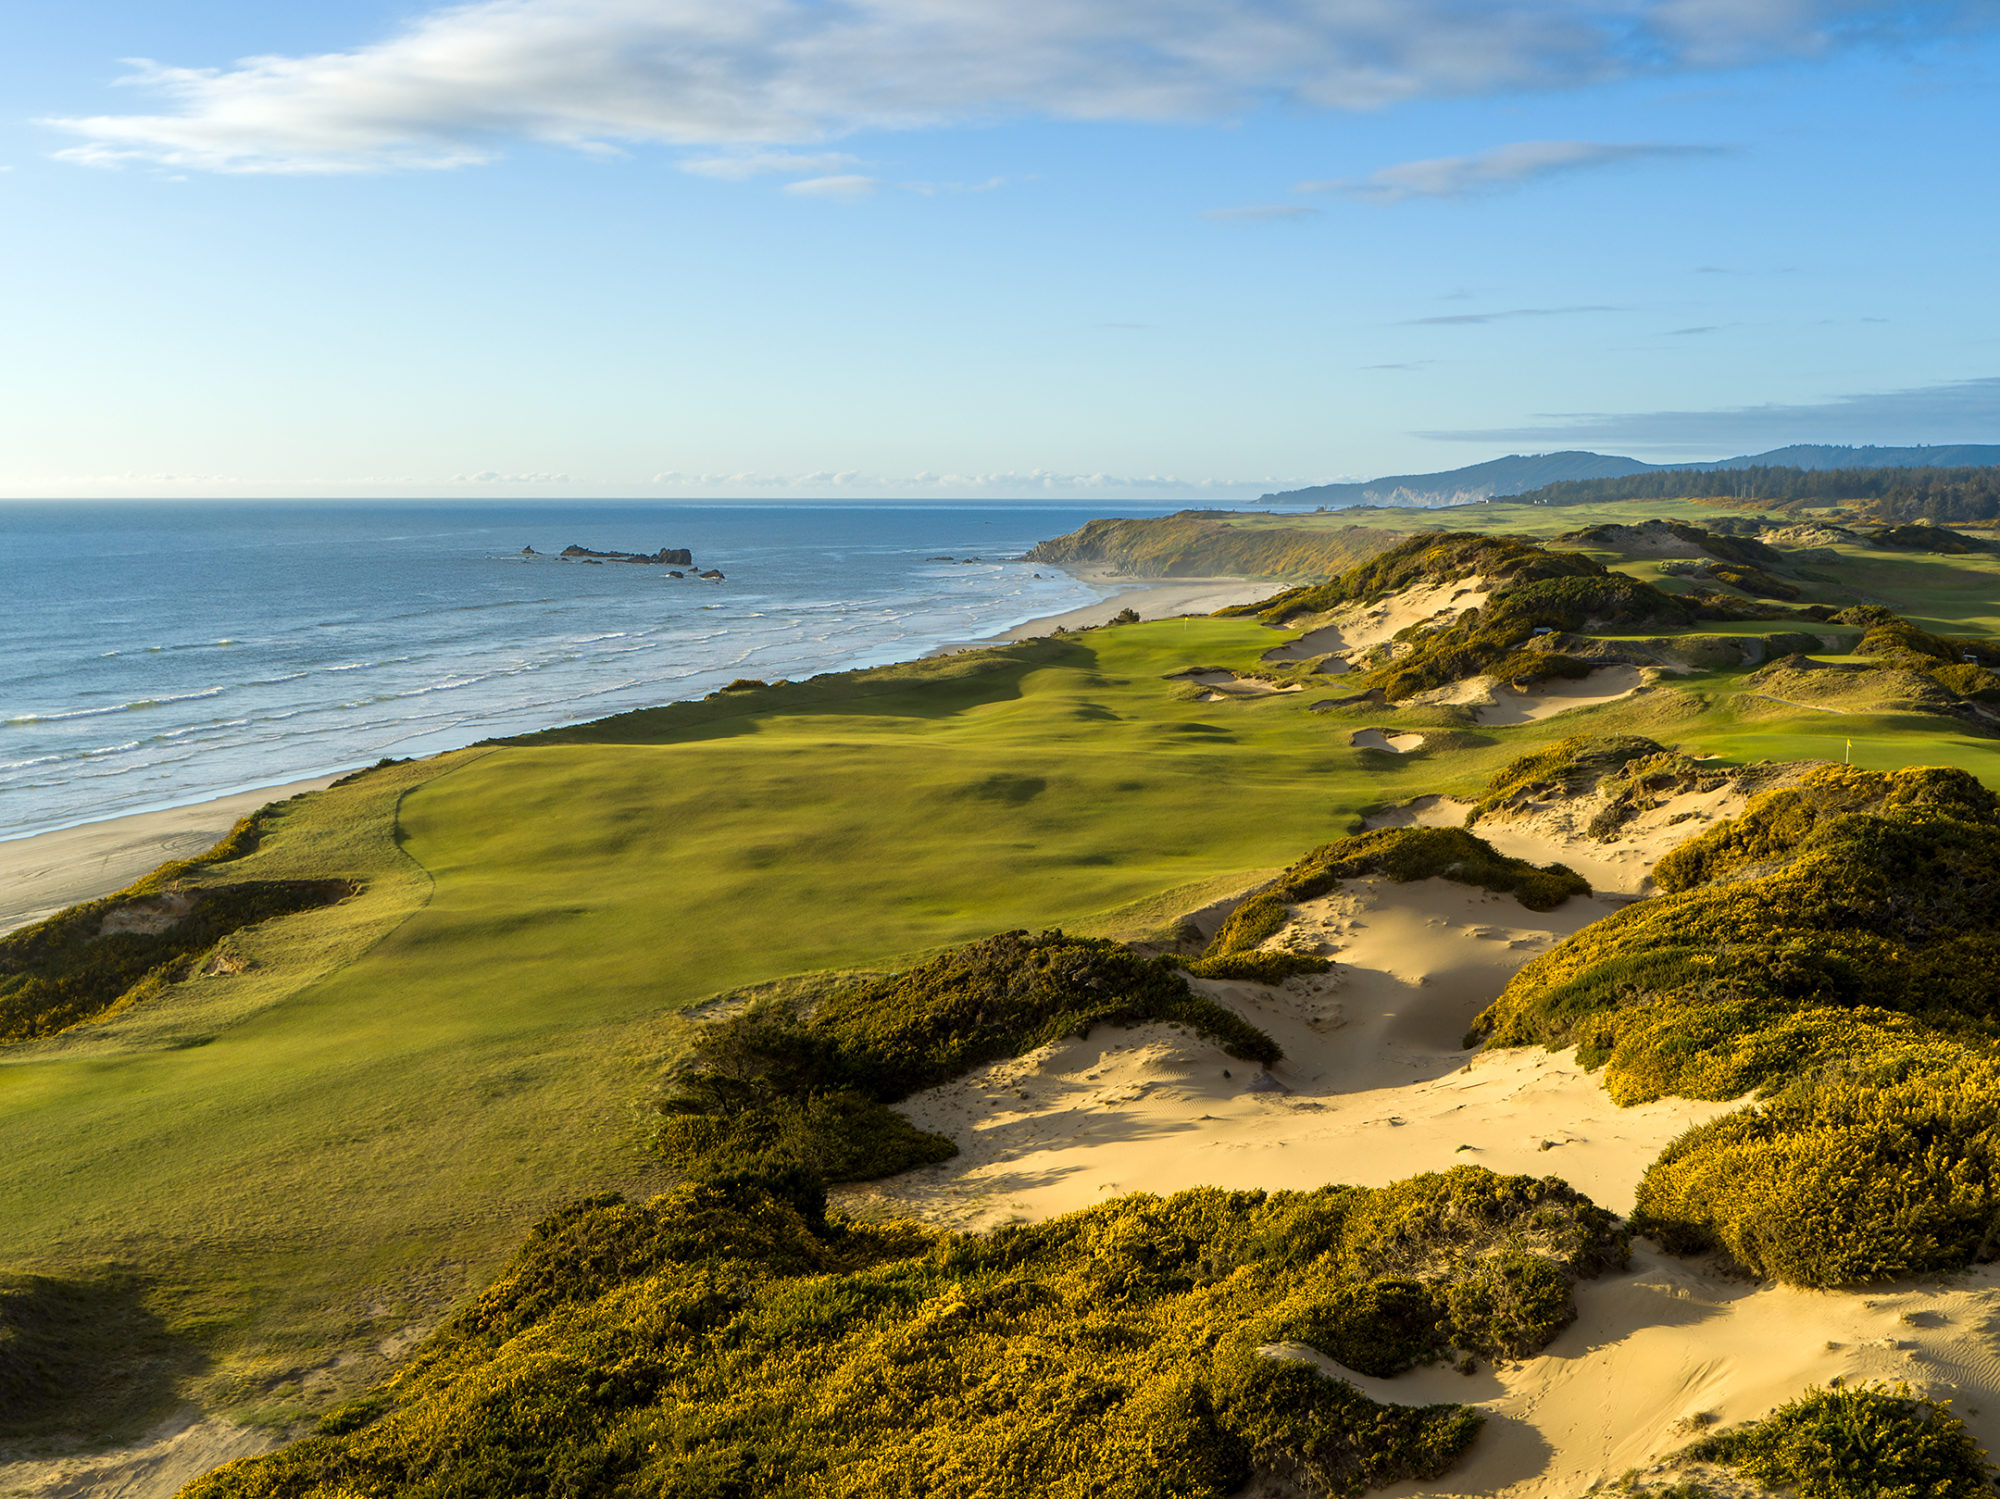 Designed by Tom Doak, the 13th hole of Pacific Dunes at Bandon Dunes Golf Resort is one of the best par 4's in the world. This image was captured in the late afternoon with an Inspire 2 using the X& camera. Bandon Dunes is one of the top golf destinations in the world.